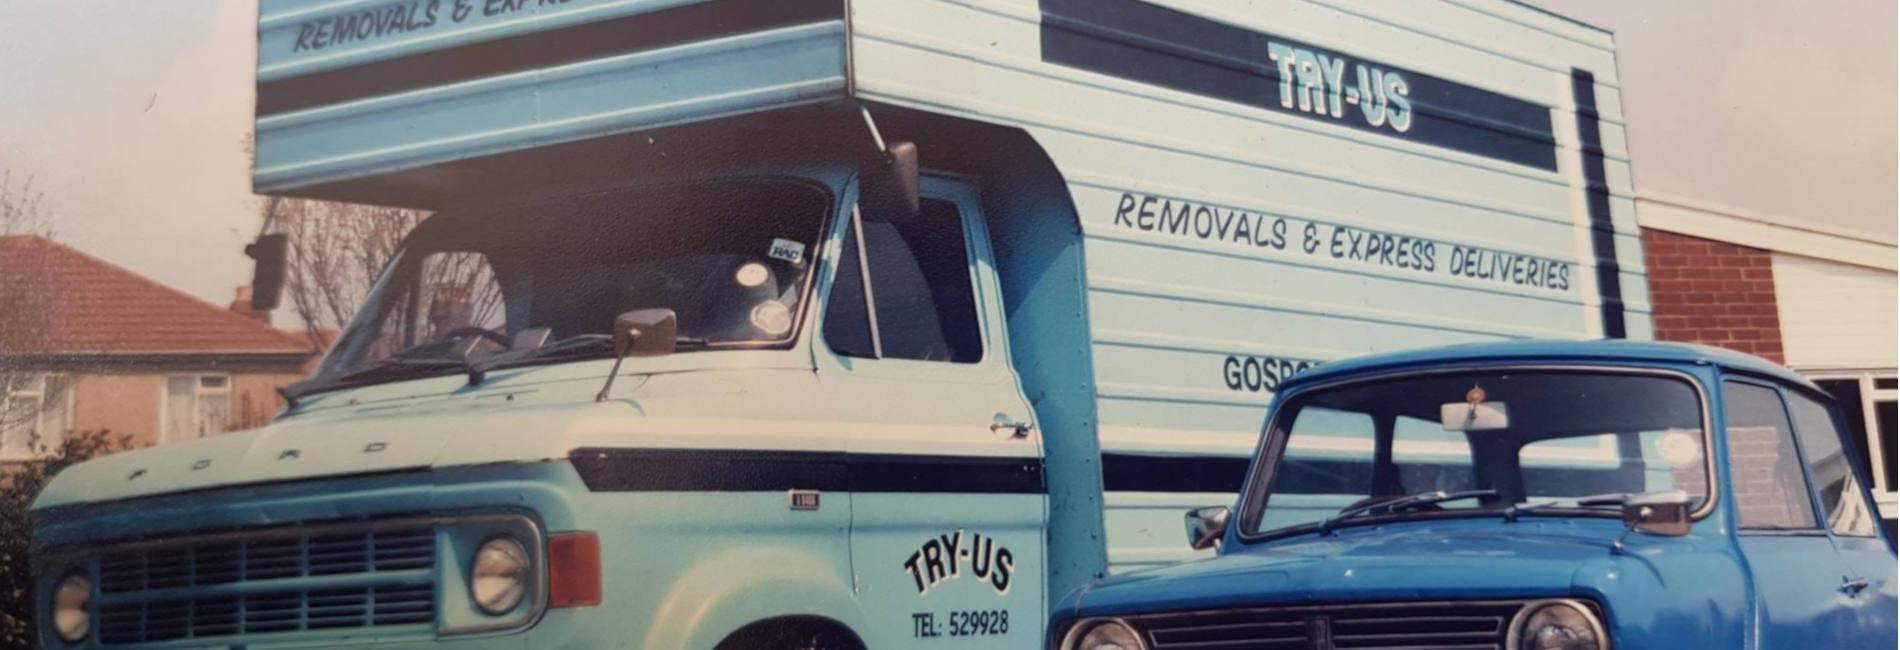 About Try Us Removals